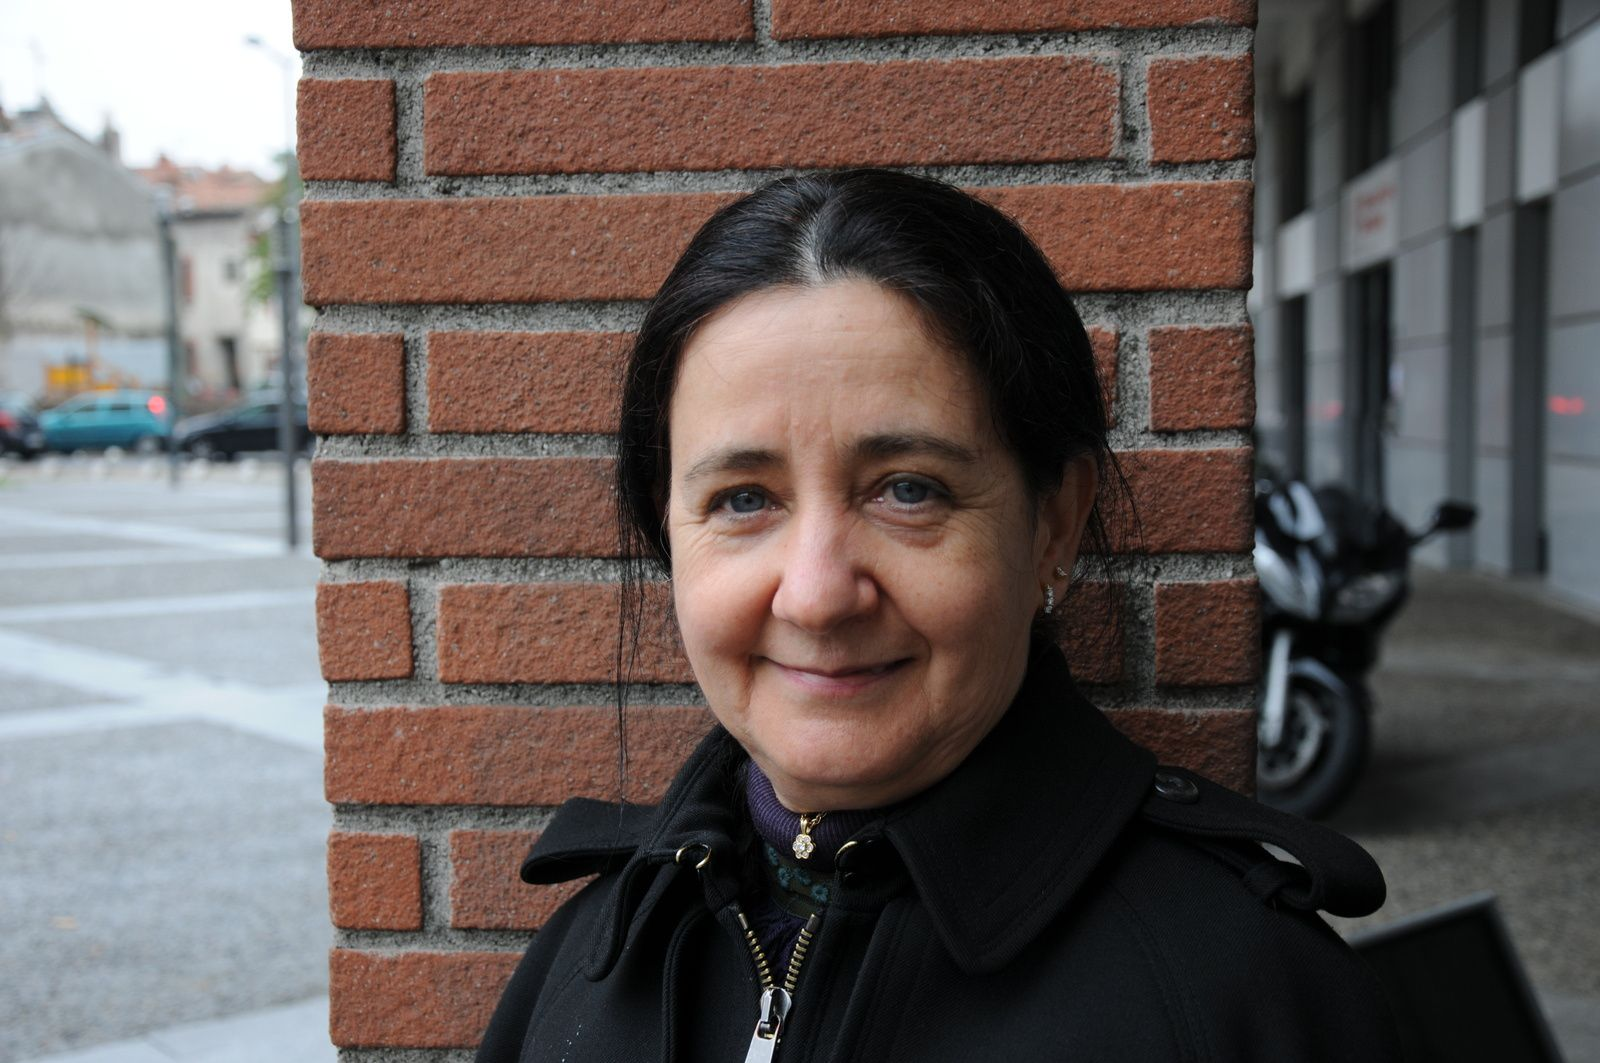 Elisabeth Belaubre (crédit photo Christelle Dameron)